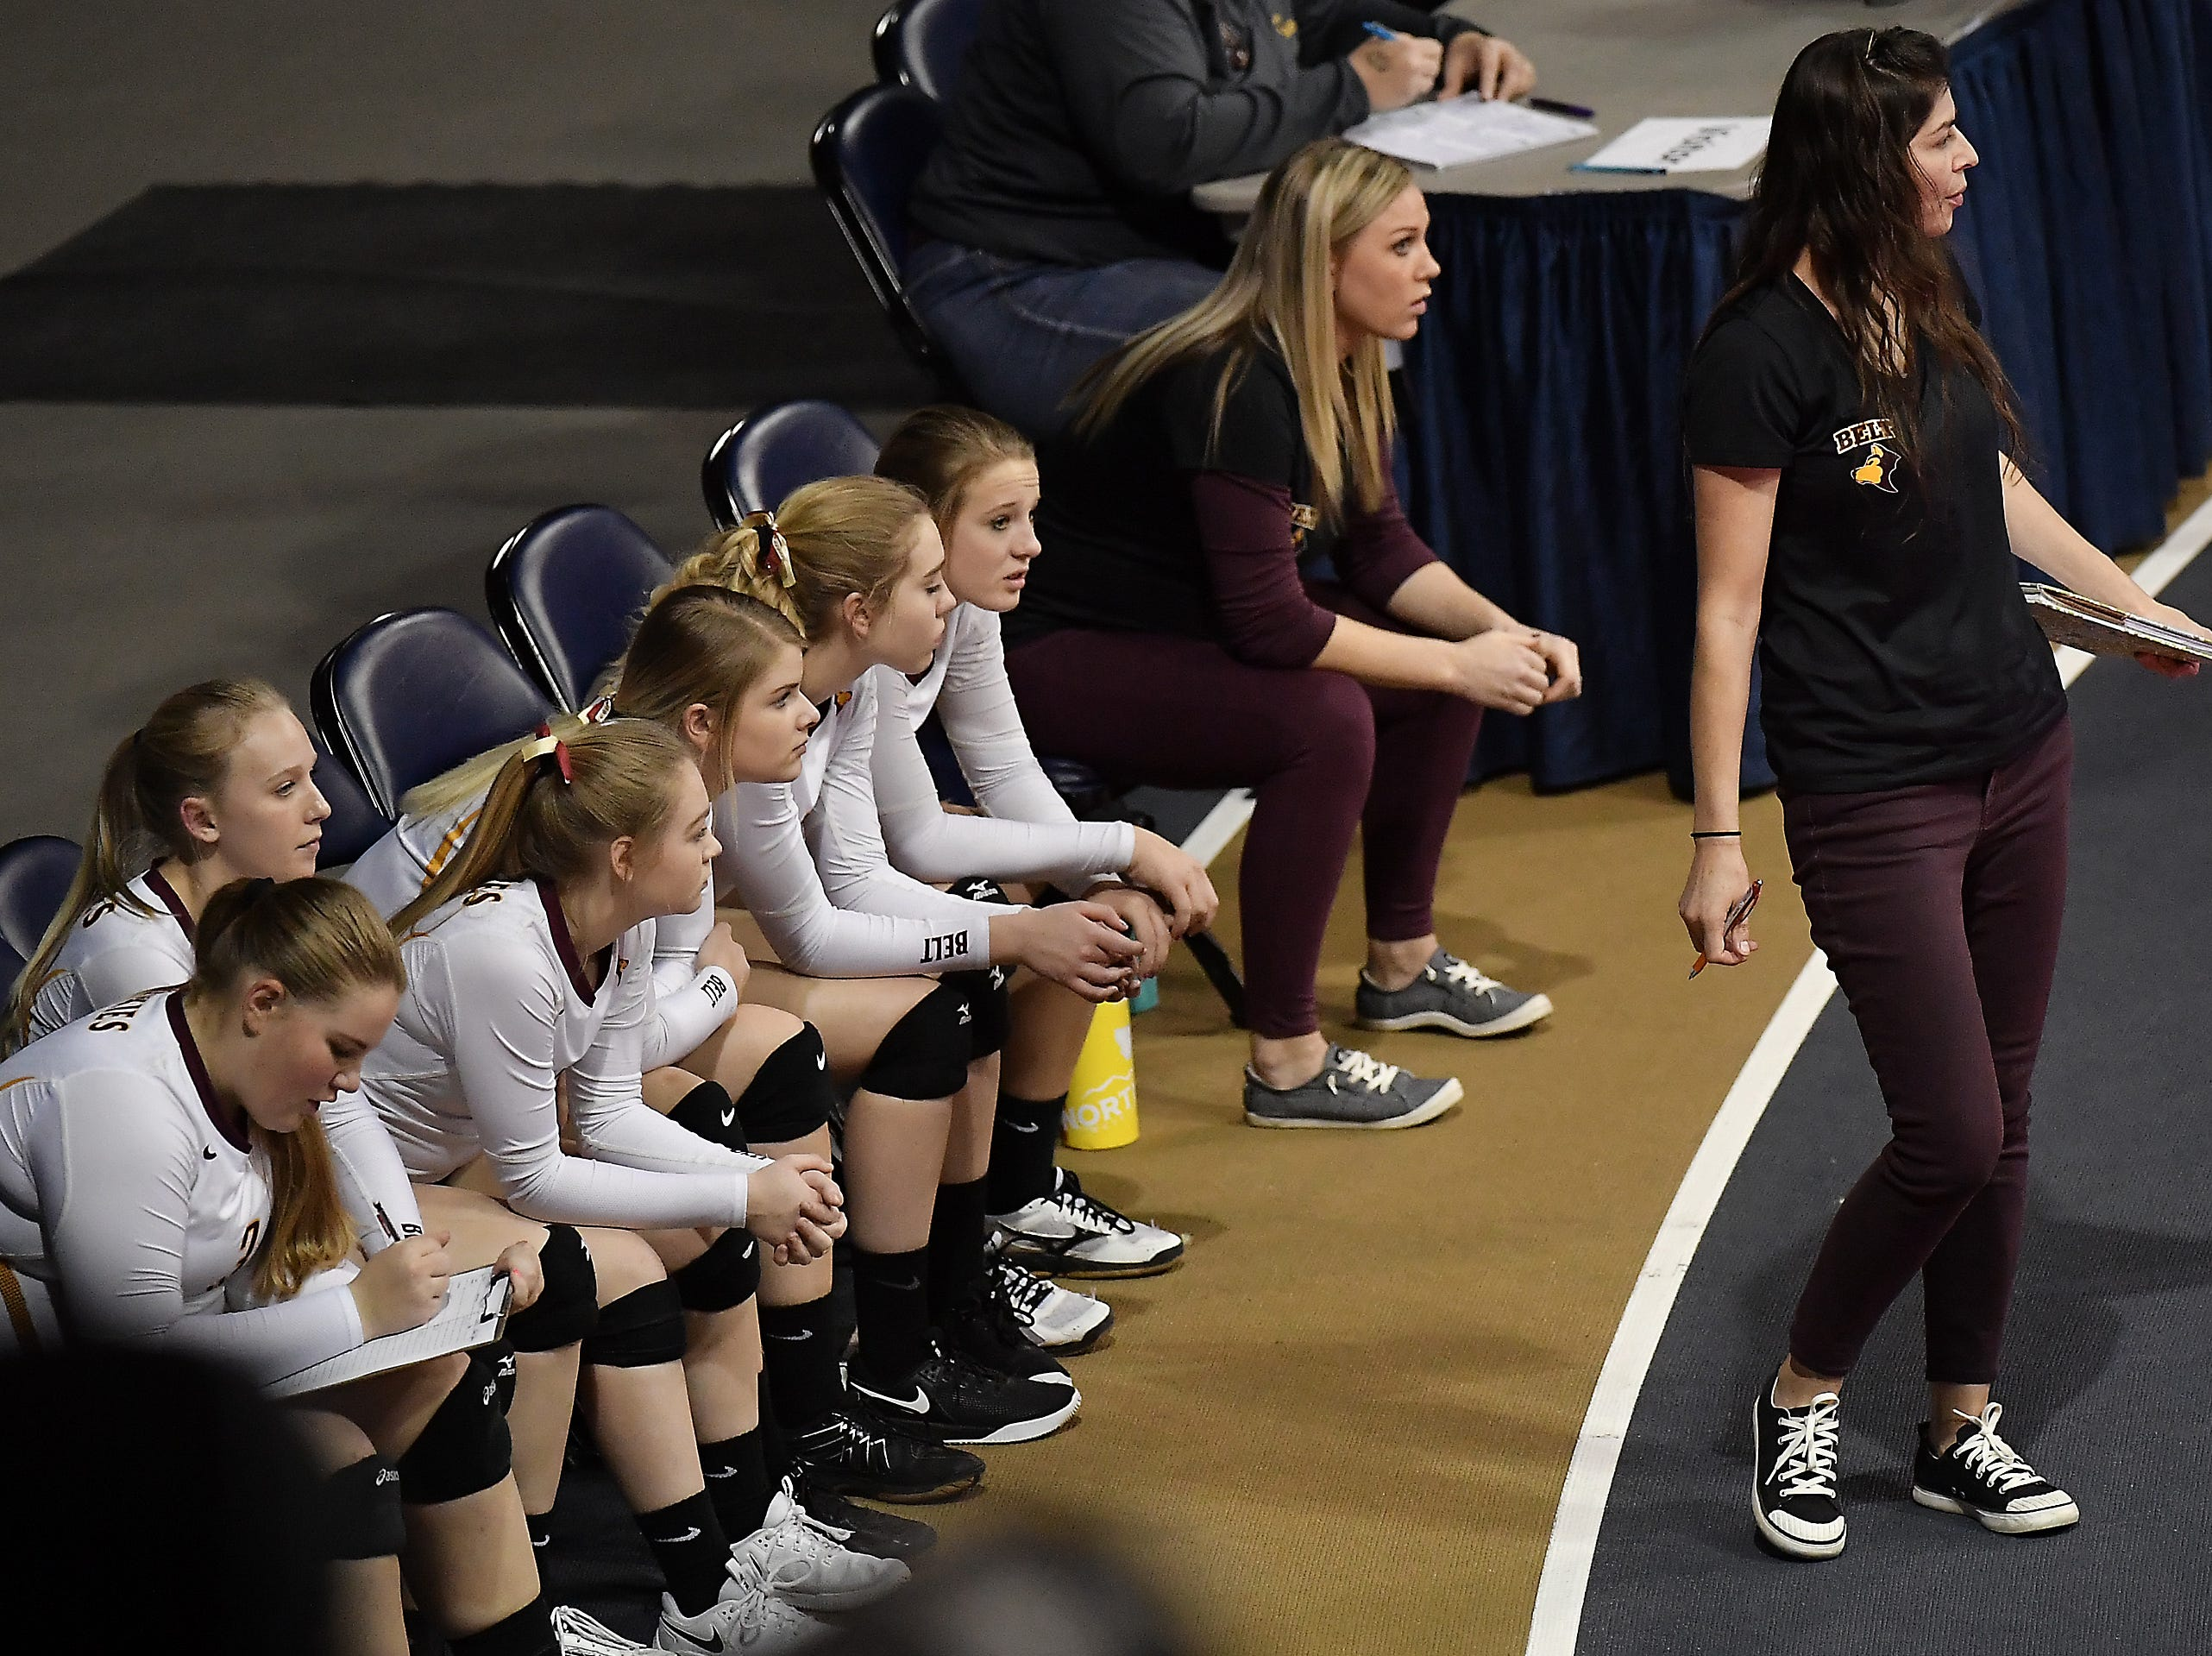 Belt head coach Christine Gondeiro and the Huskies' bench look on during the Class C undefeated semifinal at the All-Class State Volleyball Tournament at the Brick Breeden Fieldhouse in Bozeman Friday.